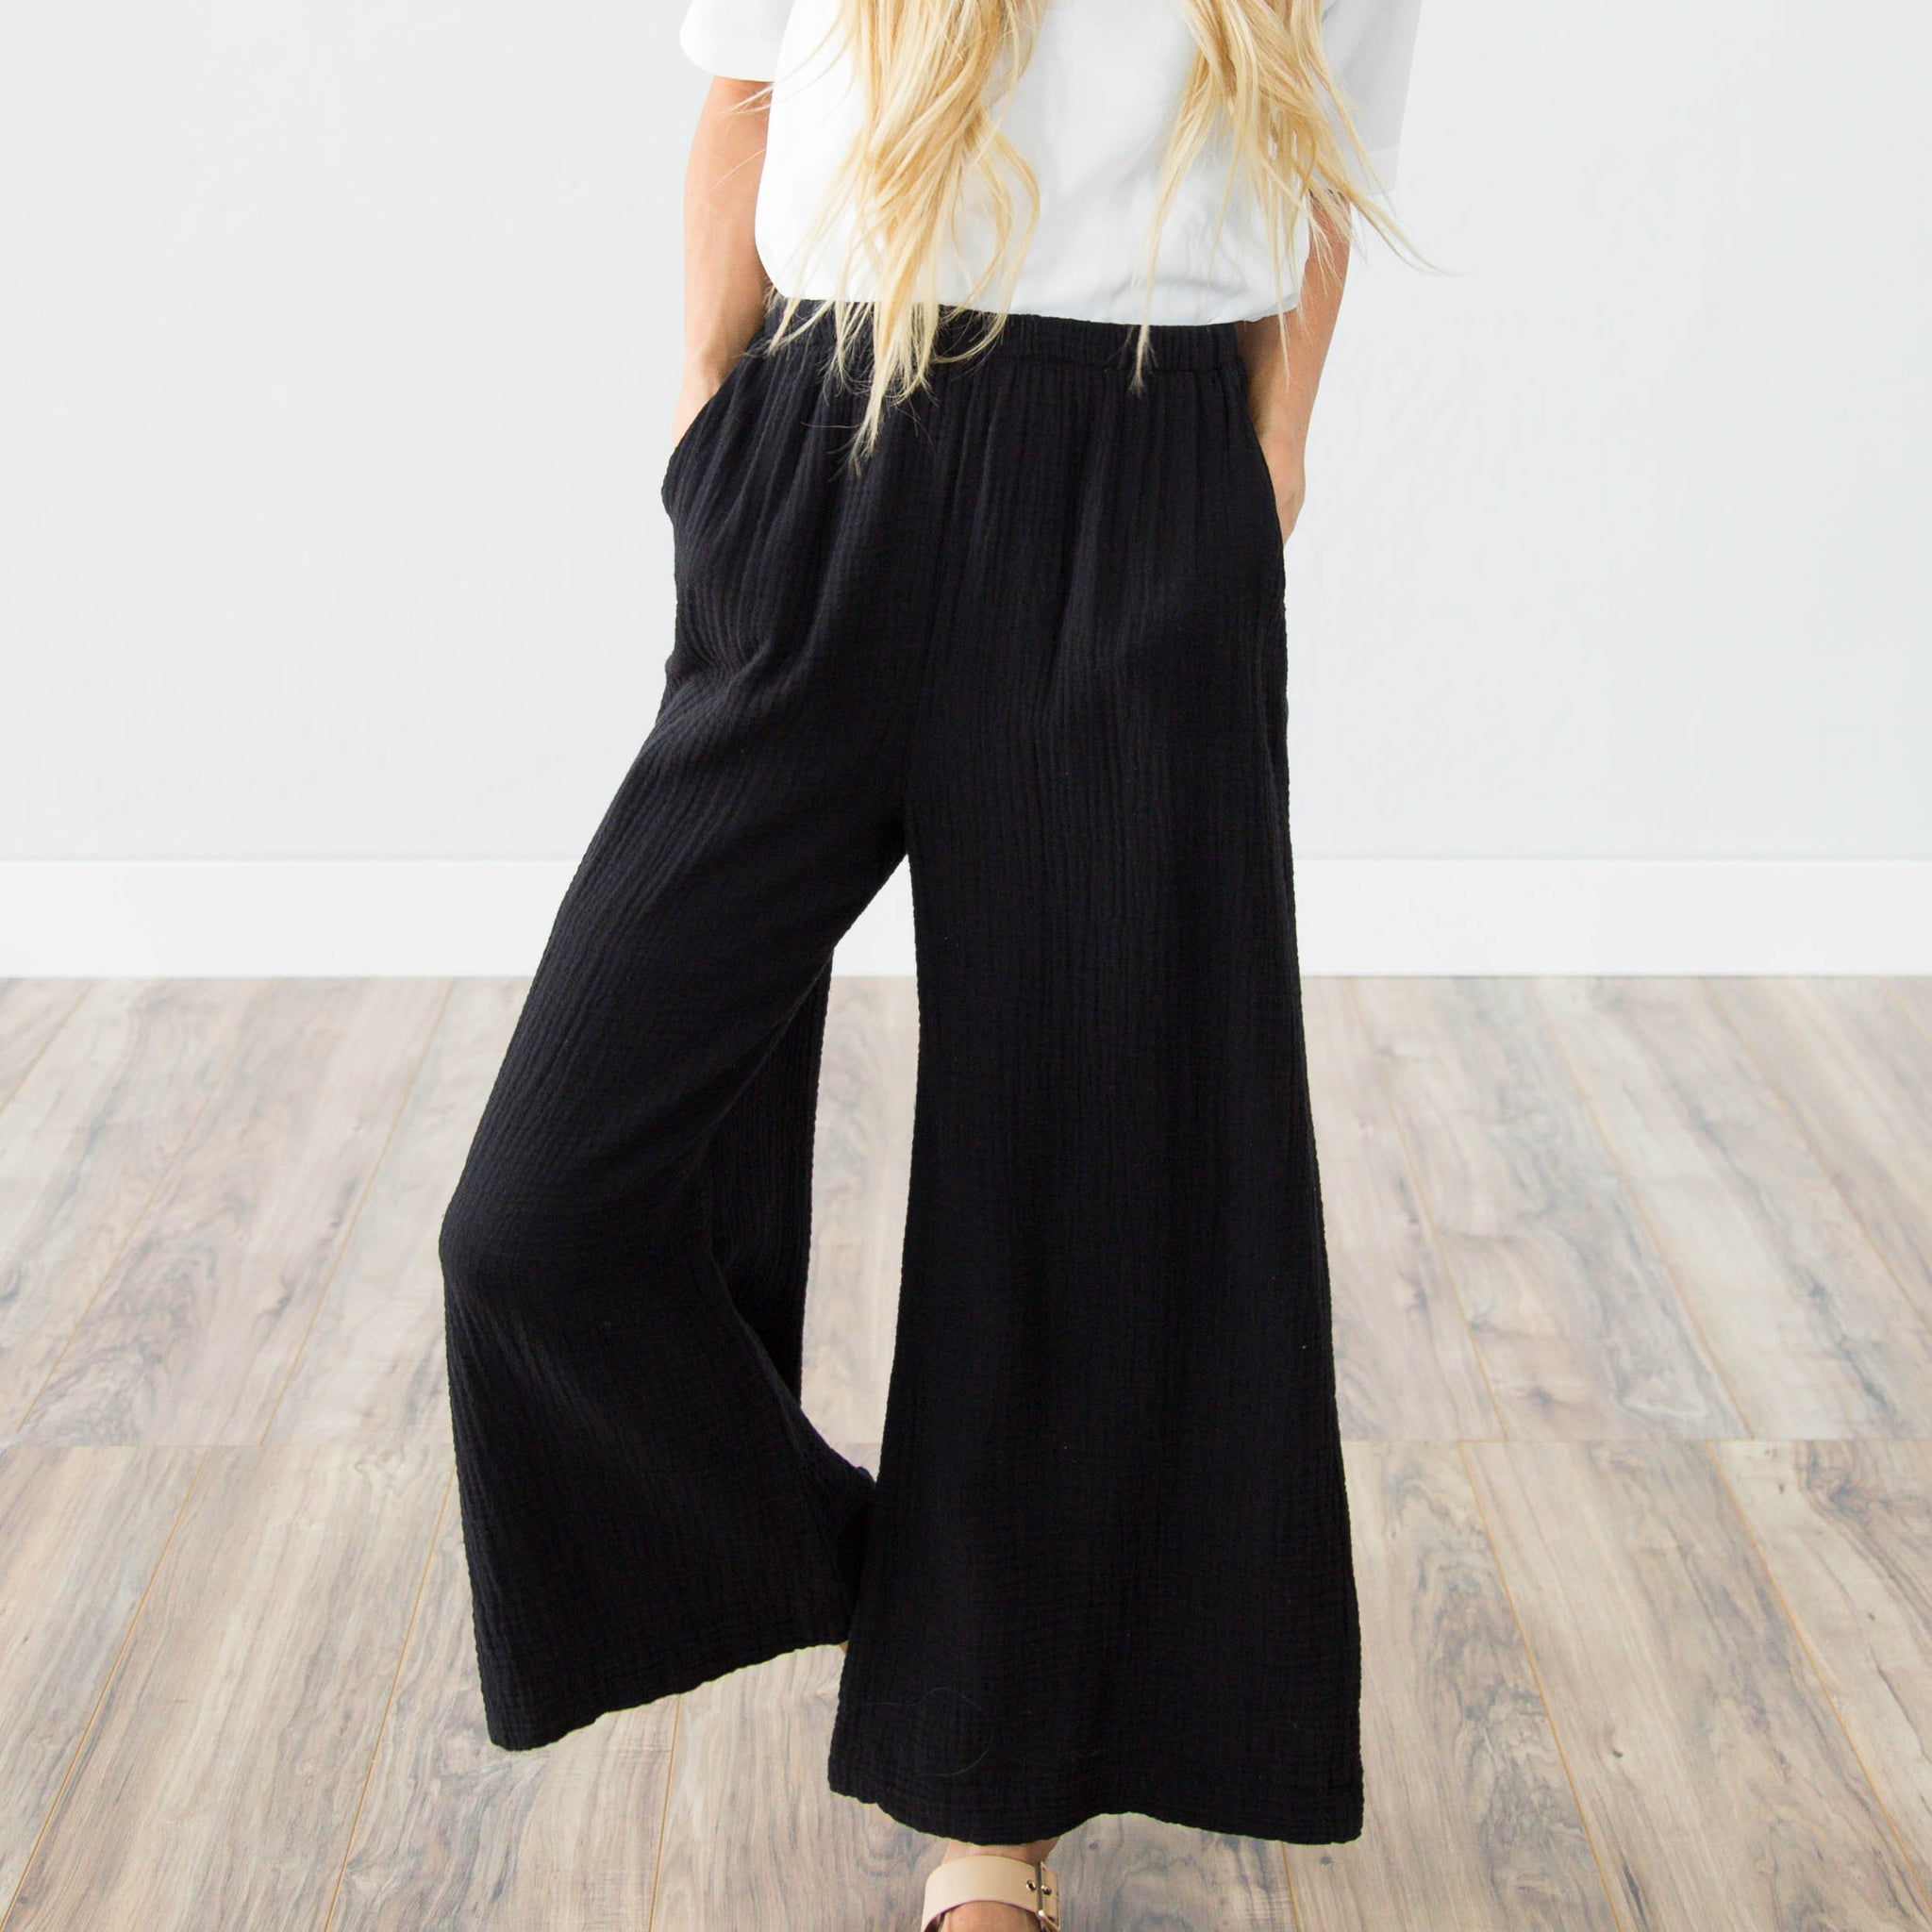 Desiray Black Pant